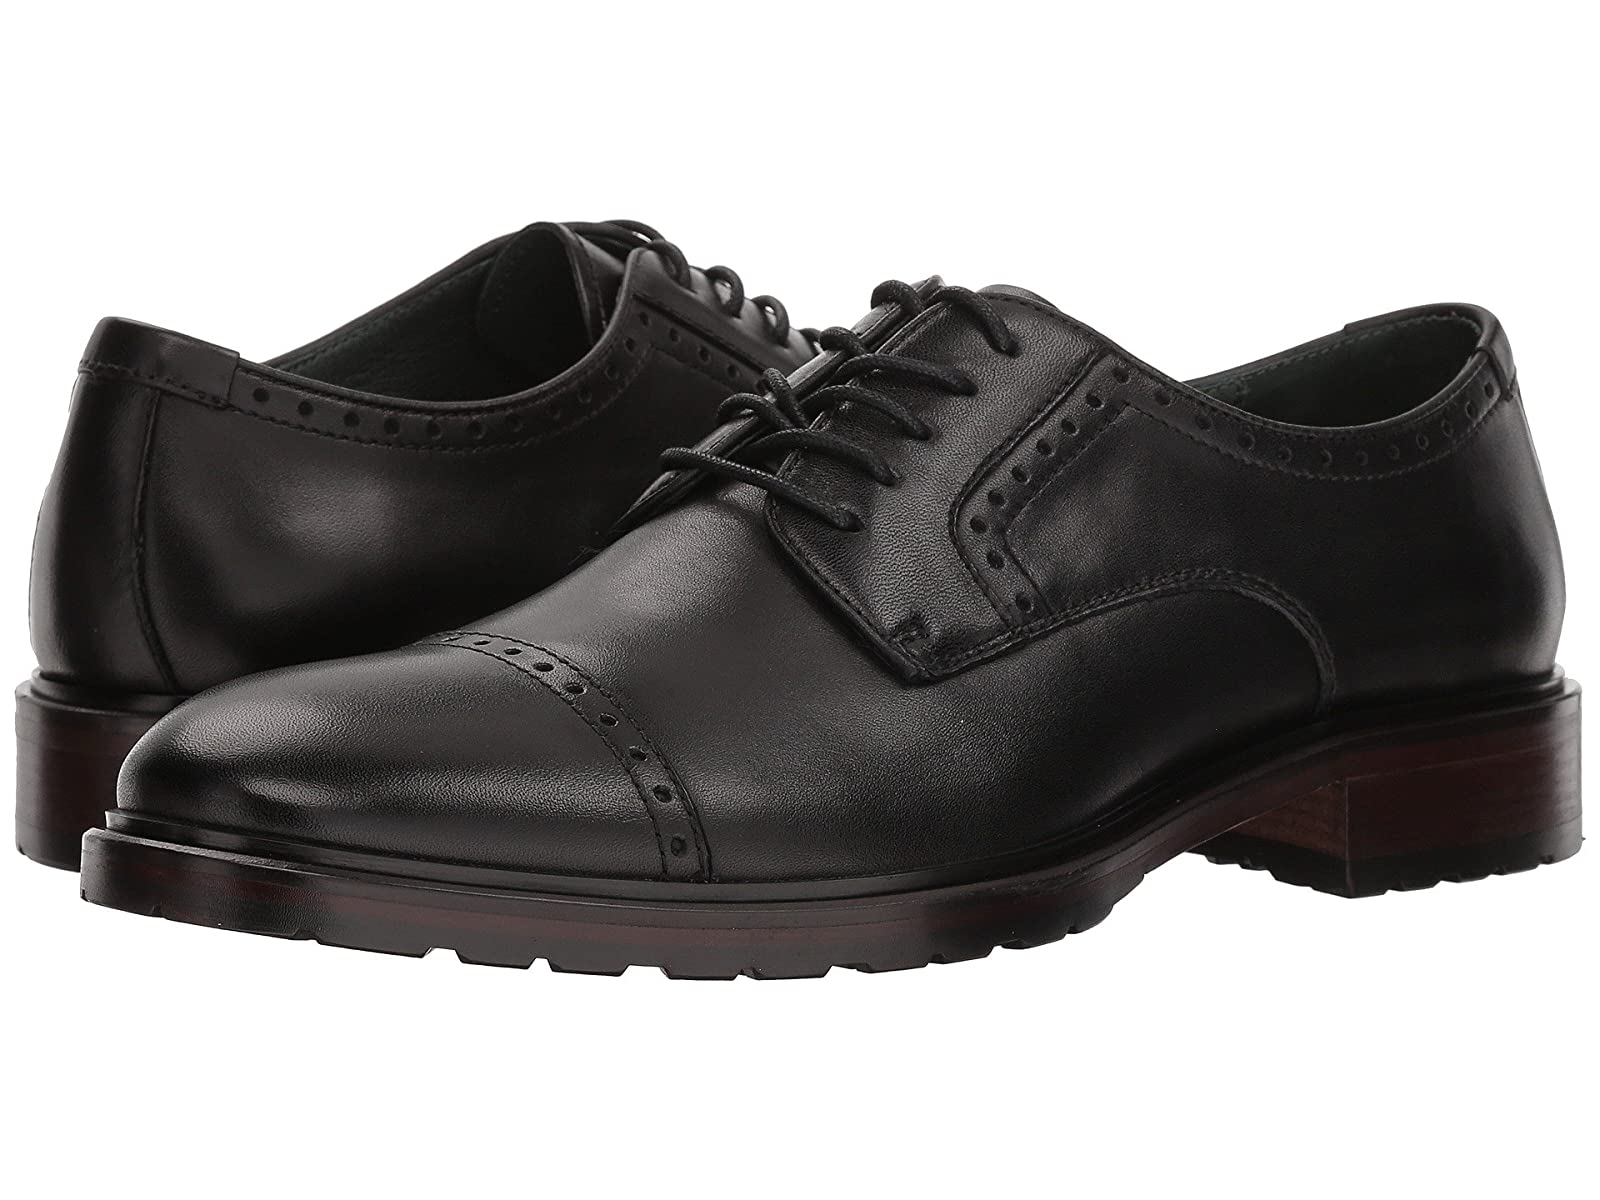 Johnston & Murphy Myles Cap ToeCheap and distinctive eye-catching shoes